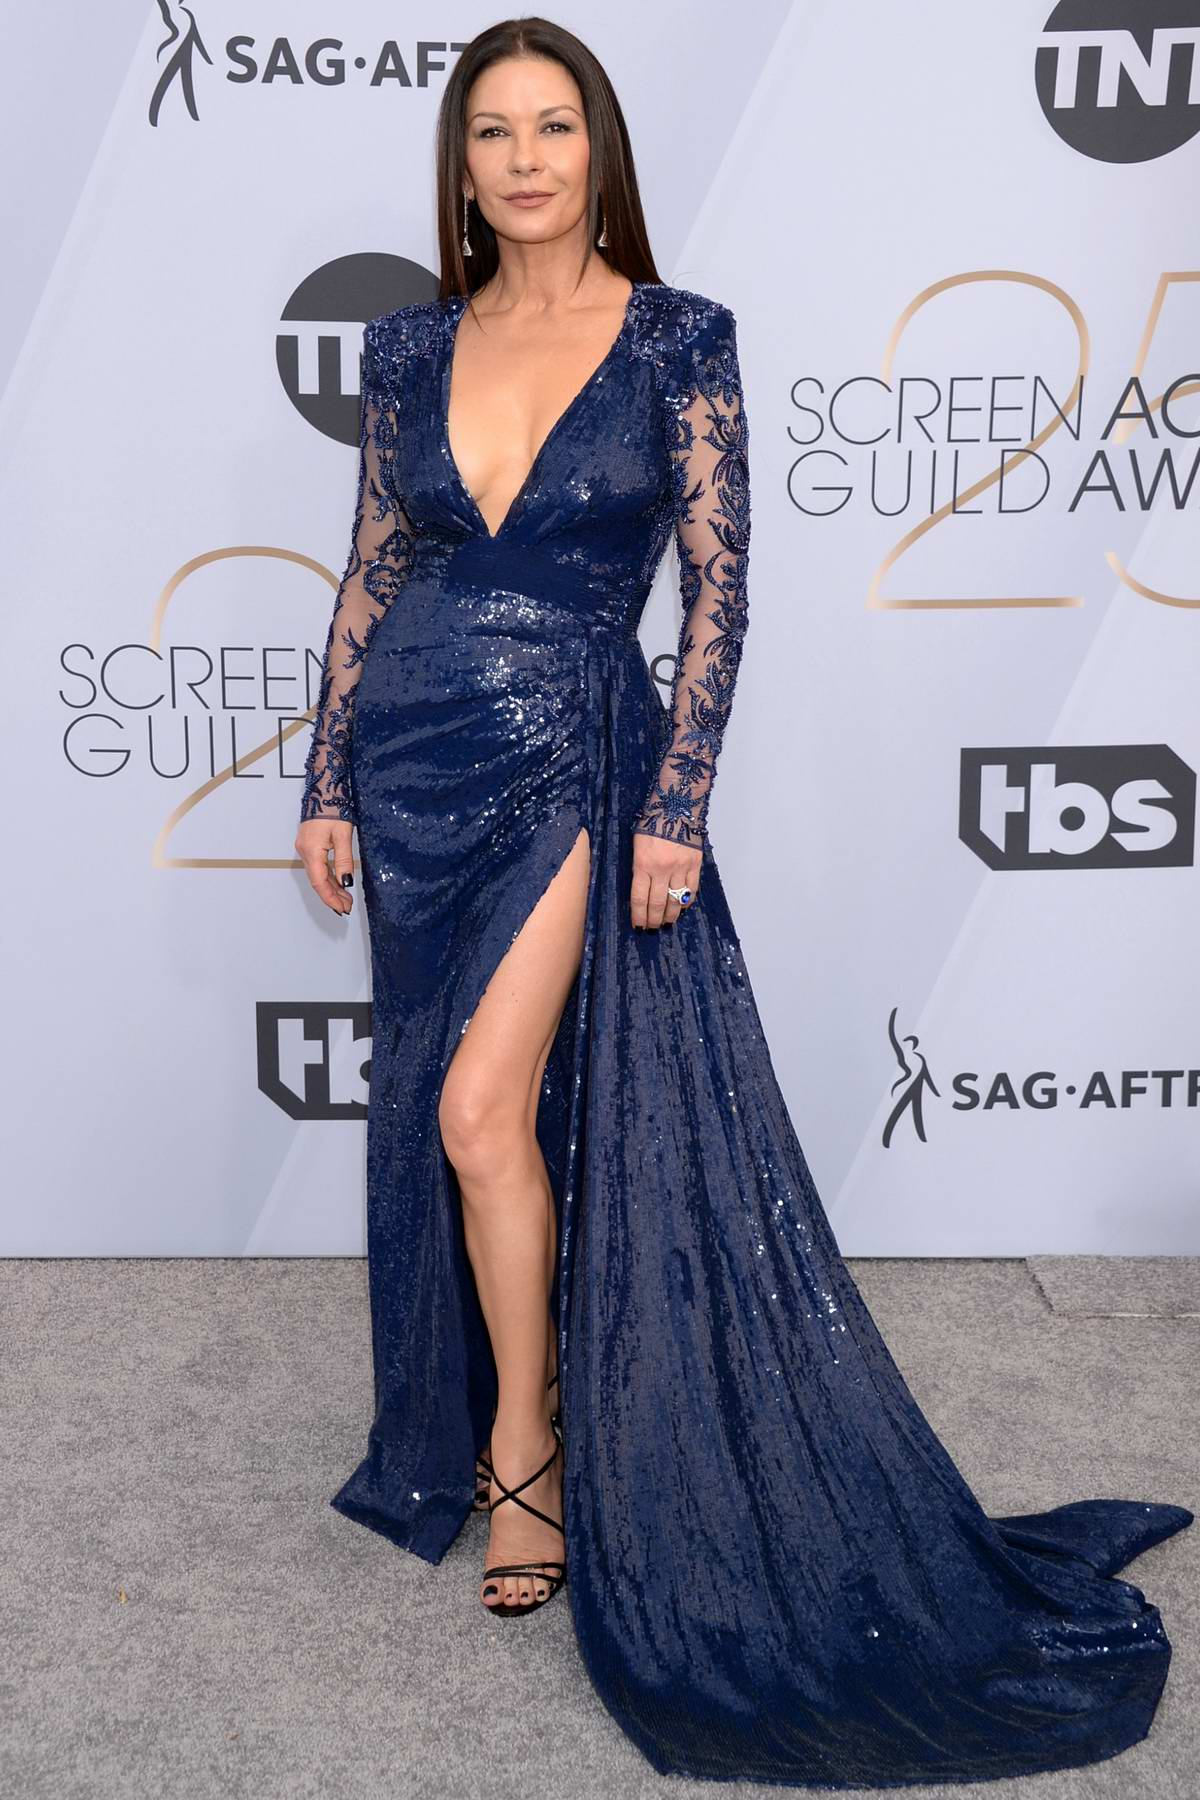 Catherine Zeta-Jones attends the 25th Annual Screen Actors Guild Awards (SAG 2019) at the Shrine Auditorium in Los Angeles